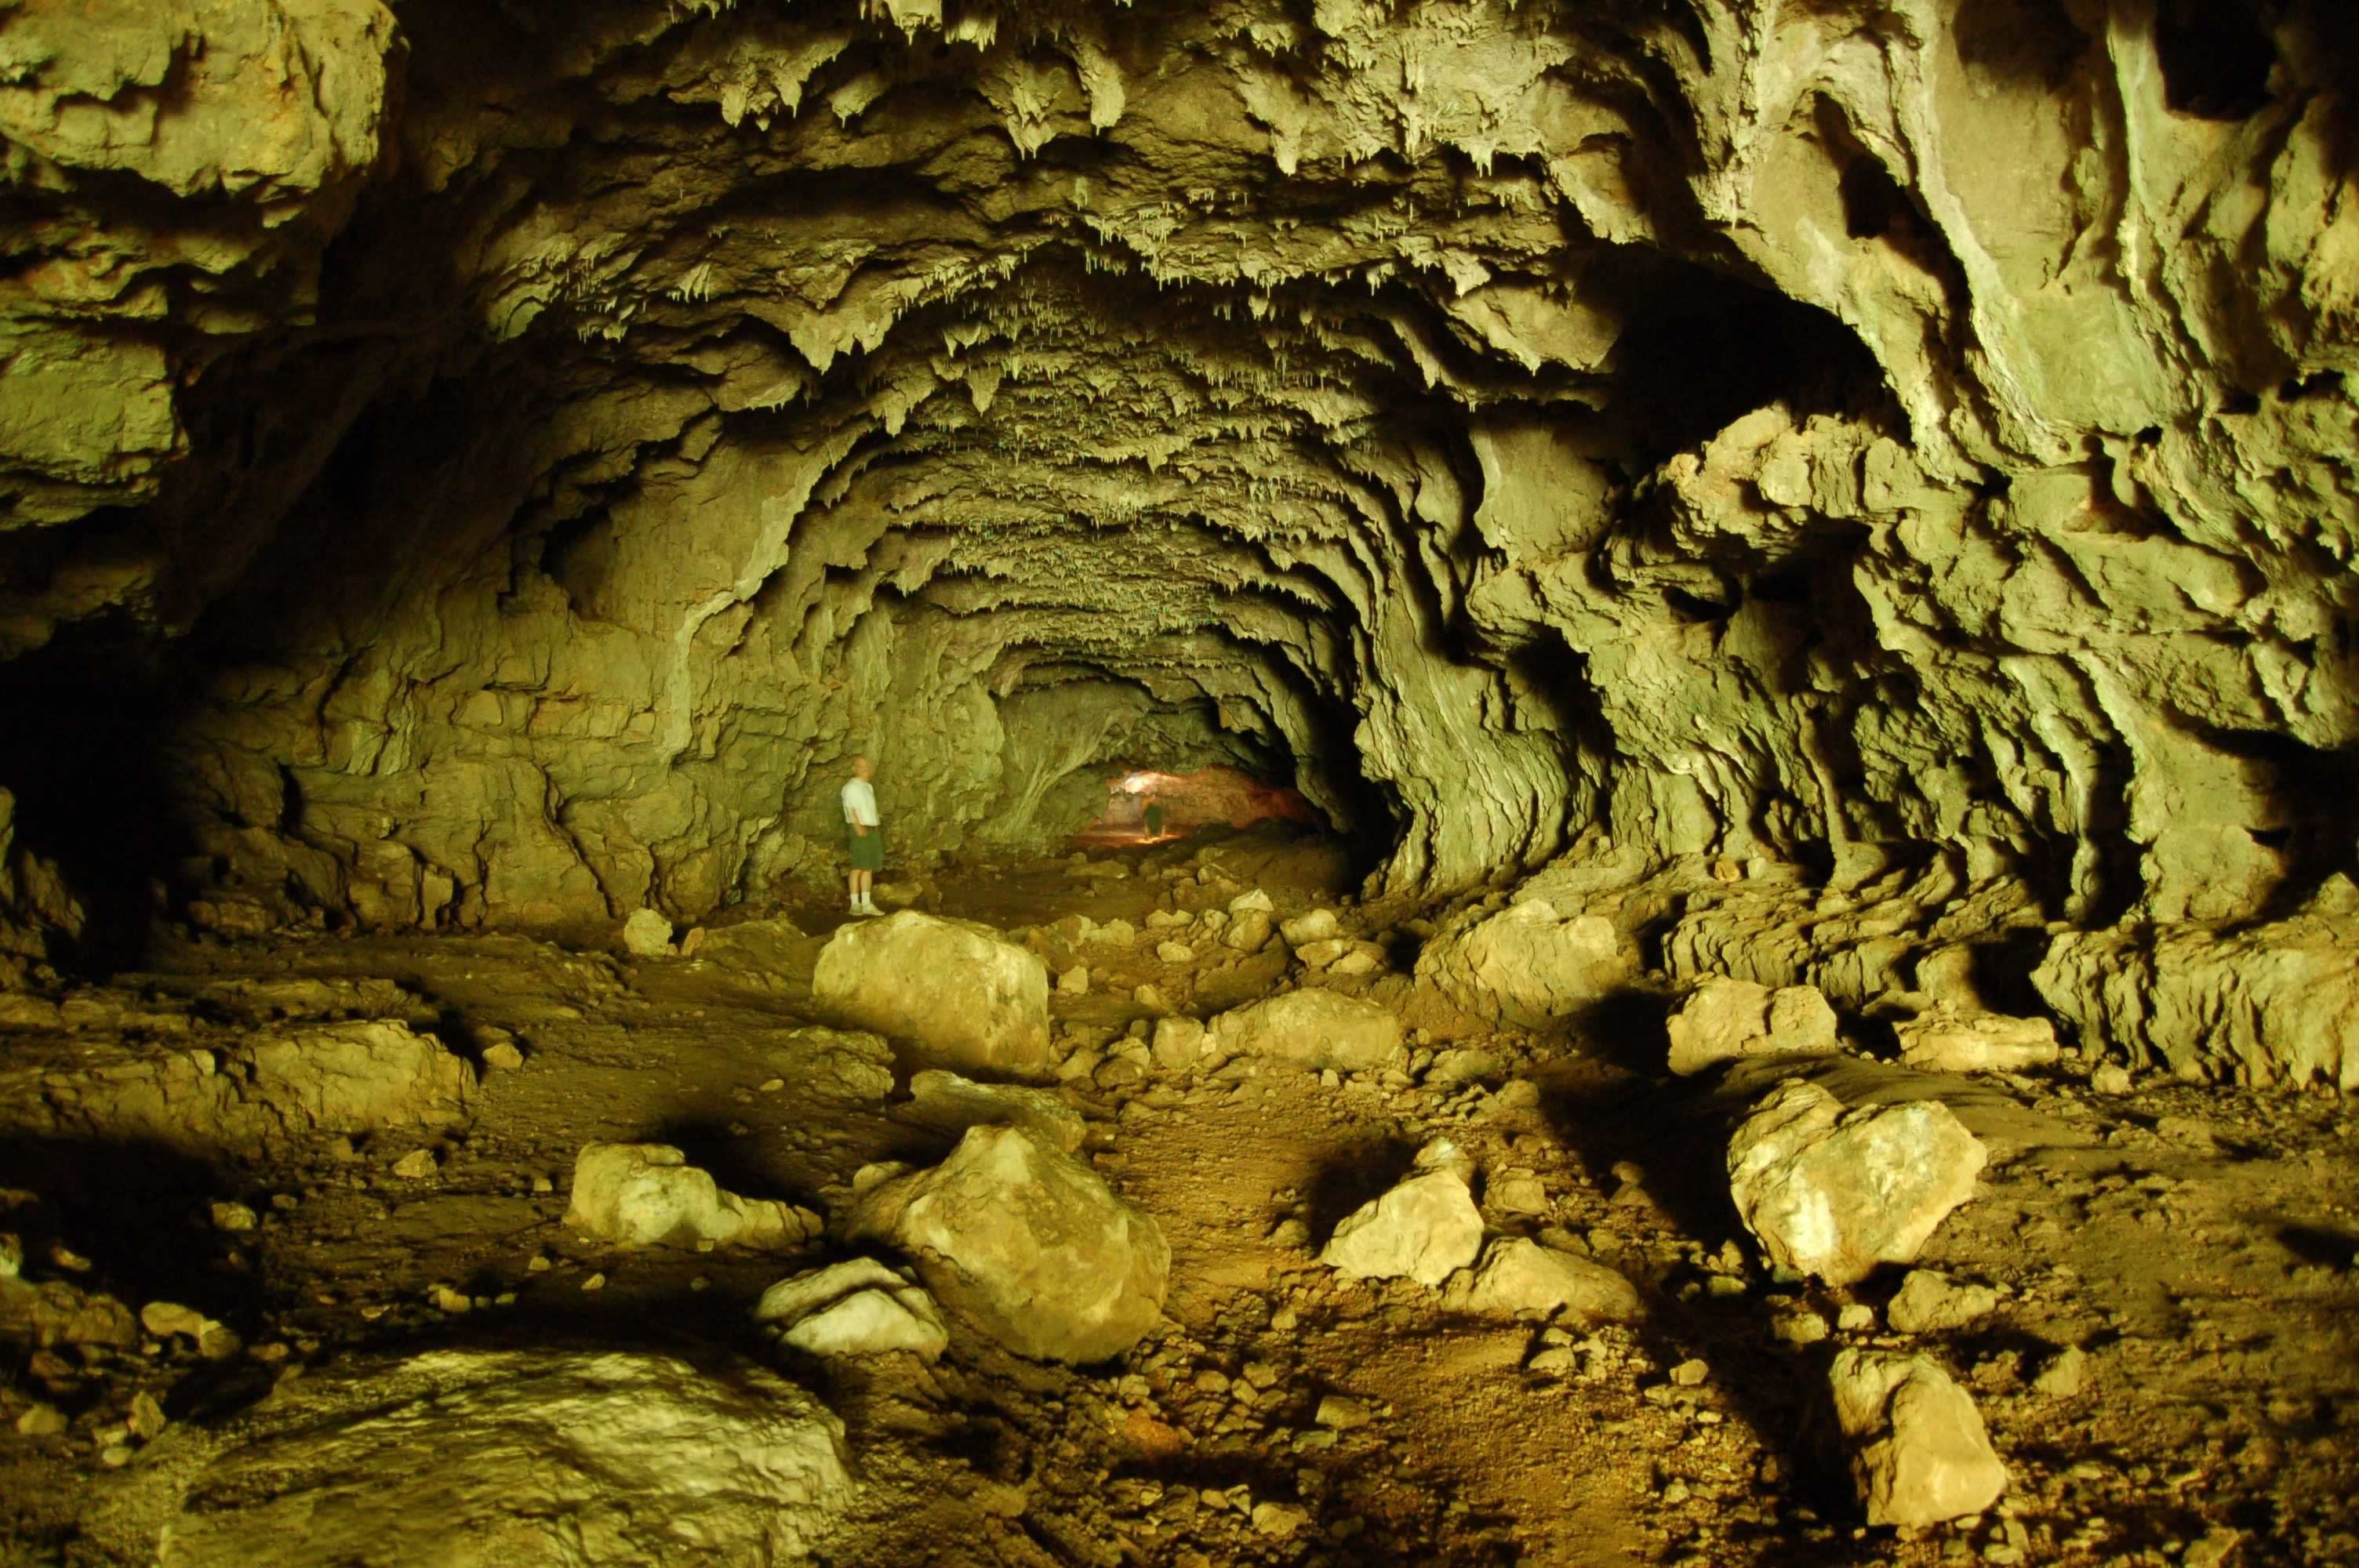 3008x2000 - Speleology Wallpapers 25